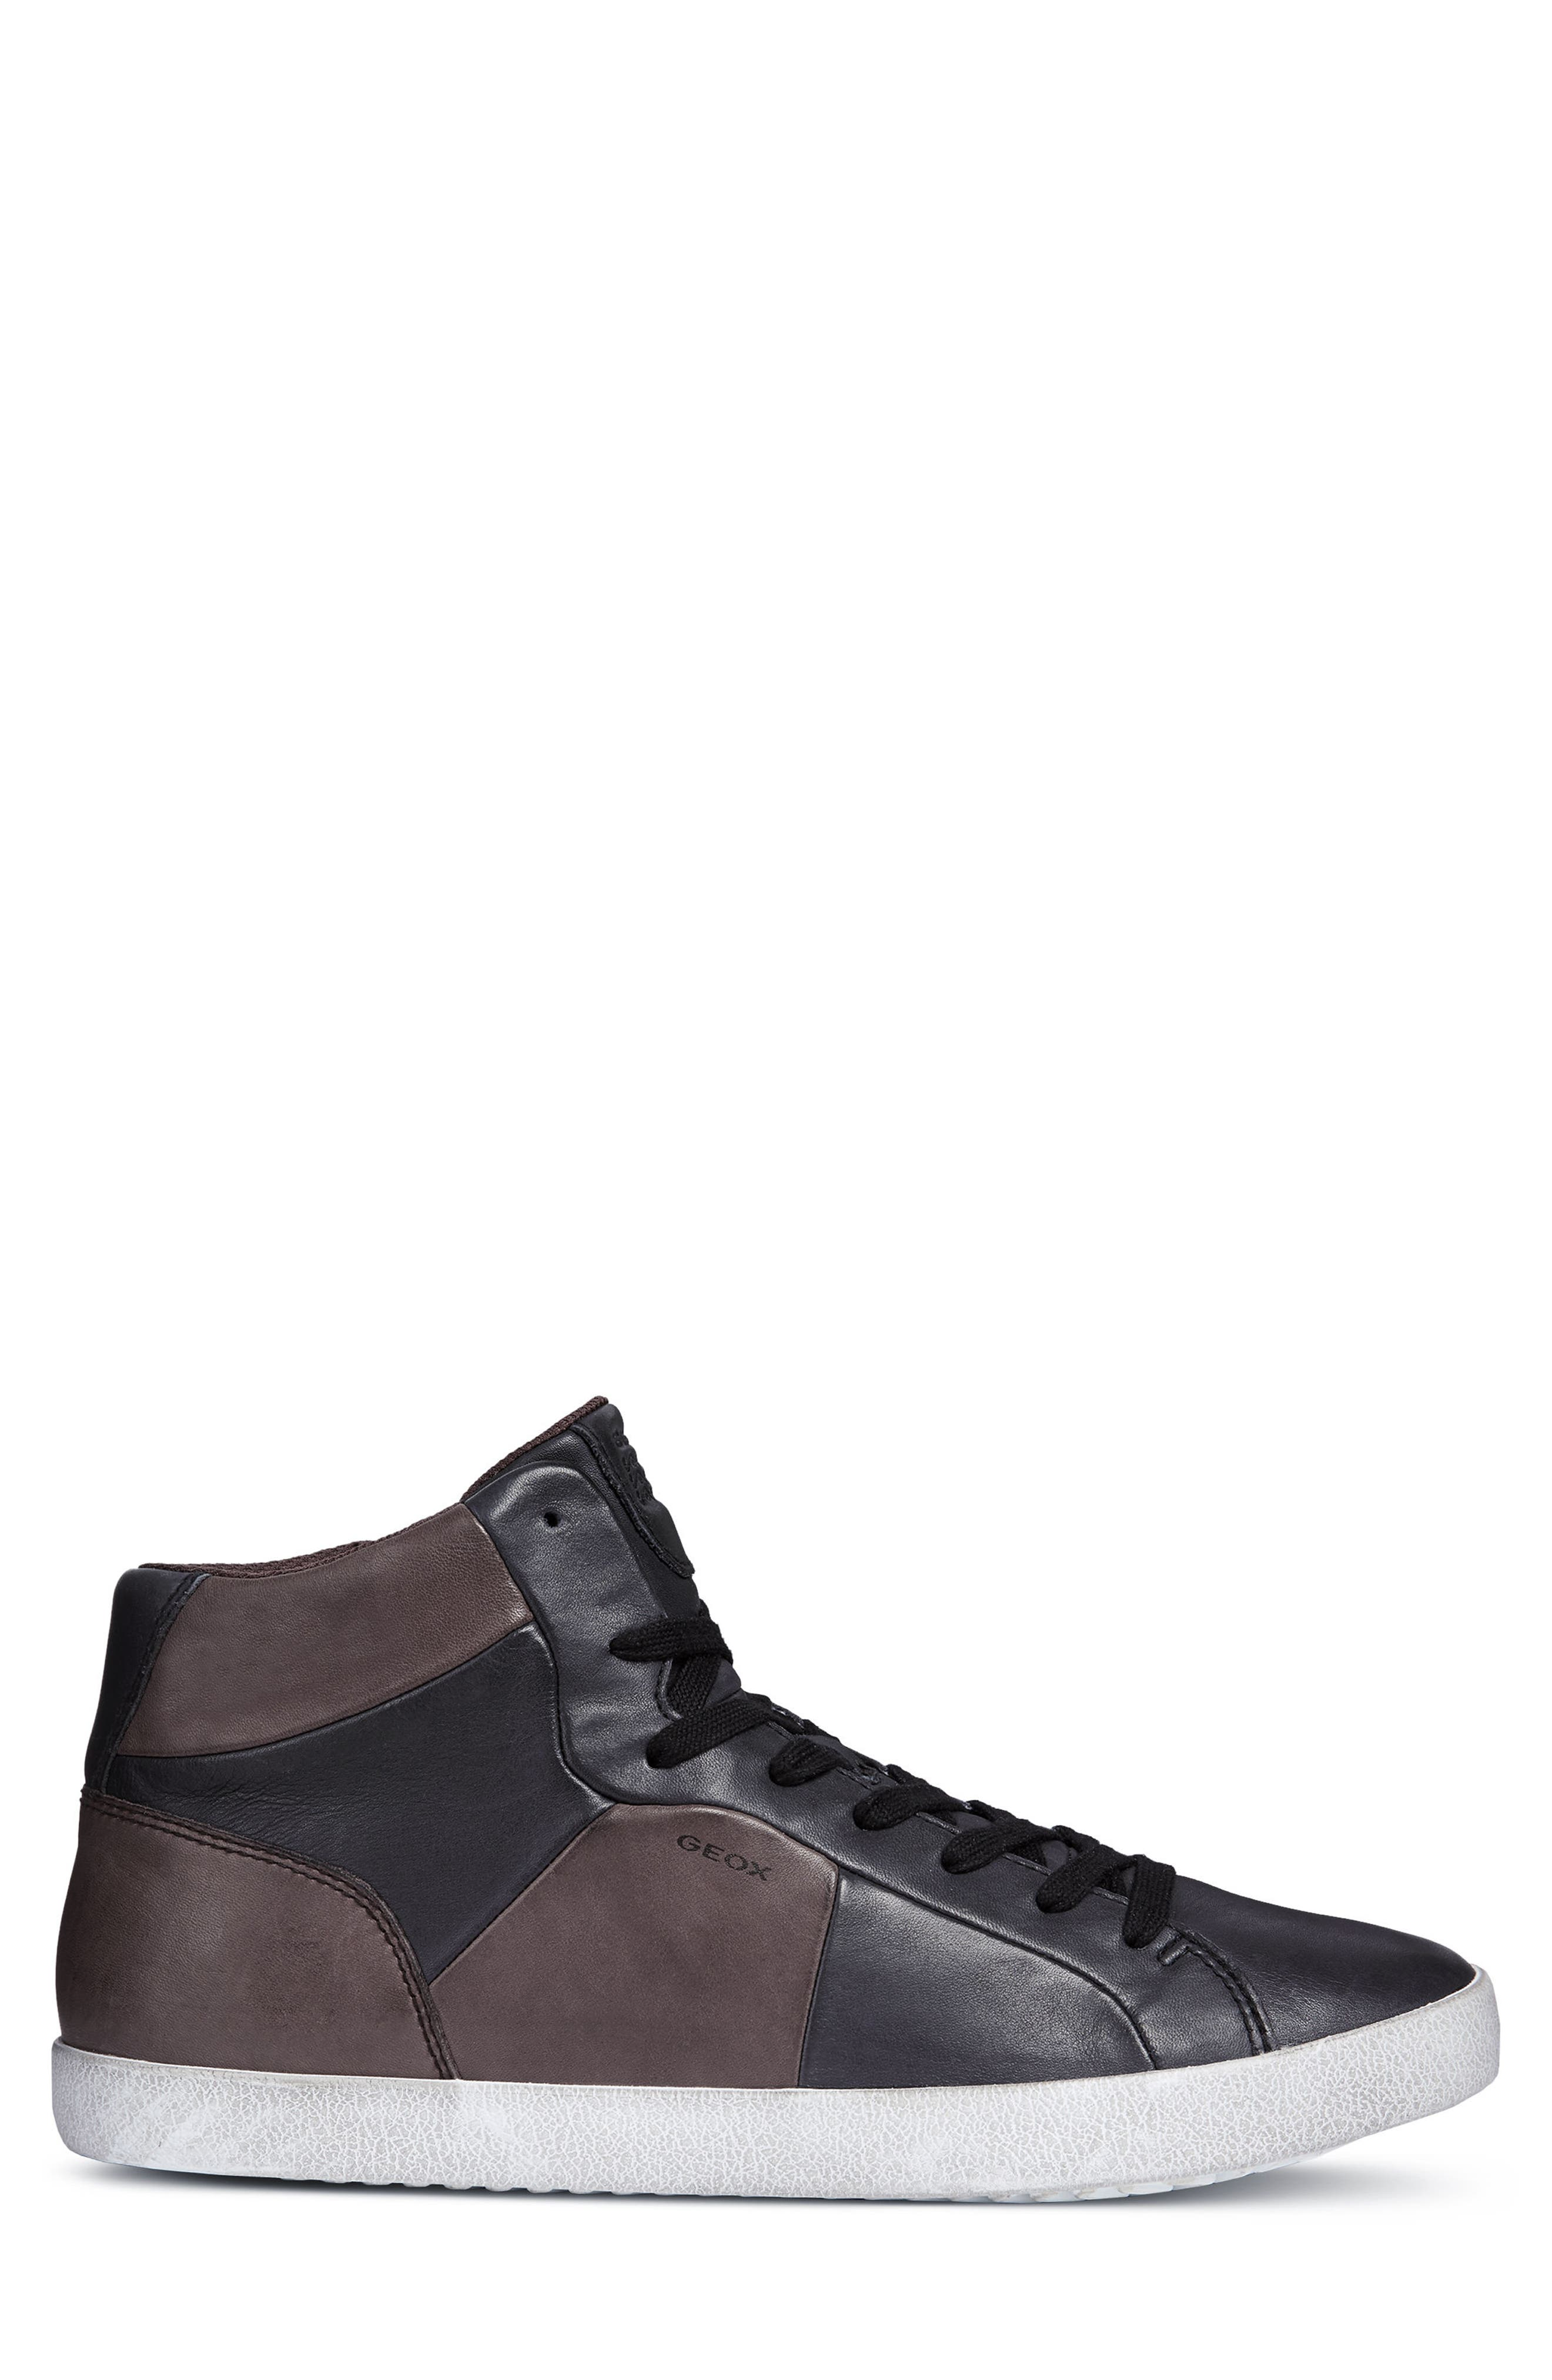 Smart 84 High Top Sneaker,                             Alternate thumbnail 3, color,                             BLACK/ COFFEE LEATHER